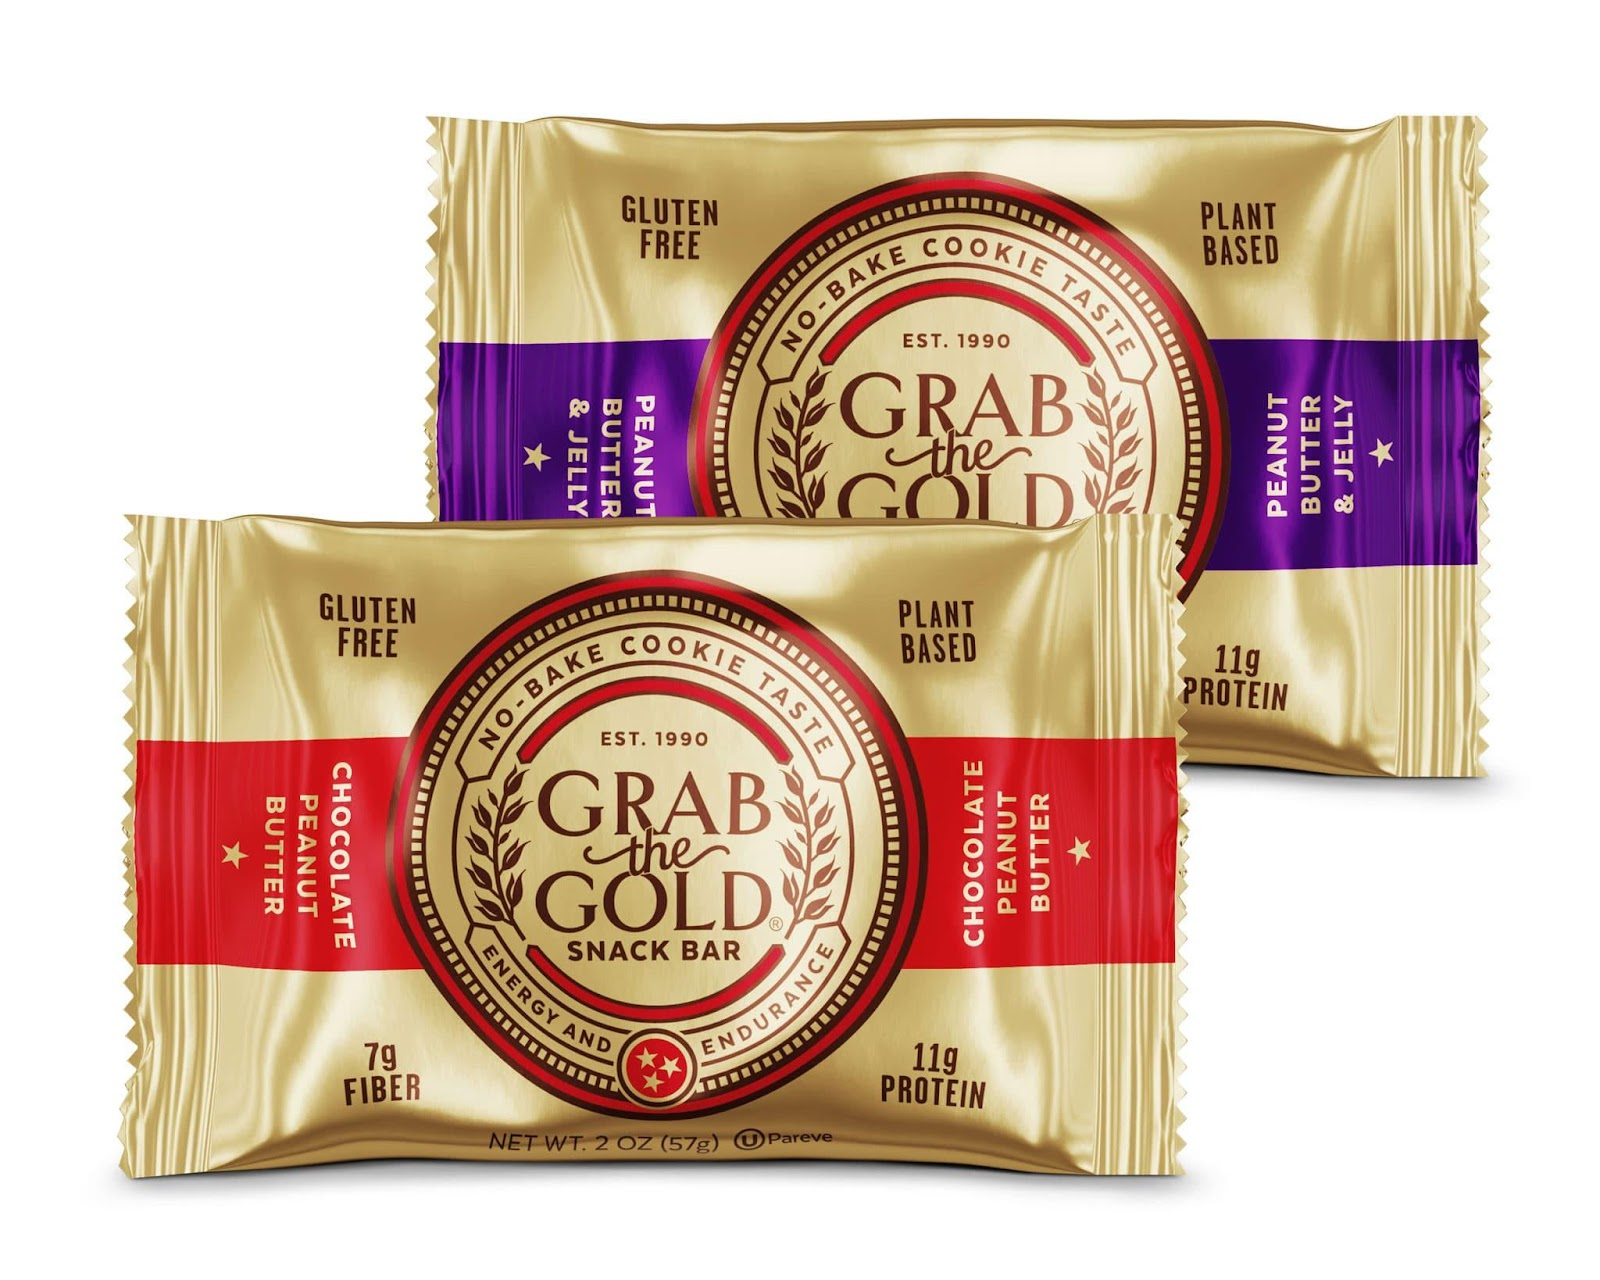 Grab The Gold Snack Bars taste like yummy no-bake cookies-11g protein